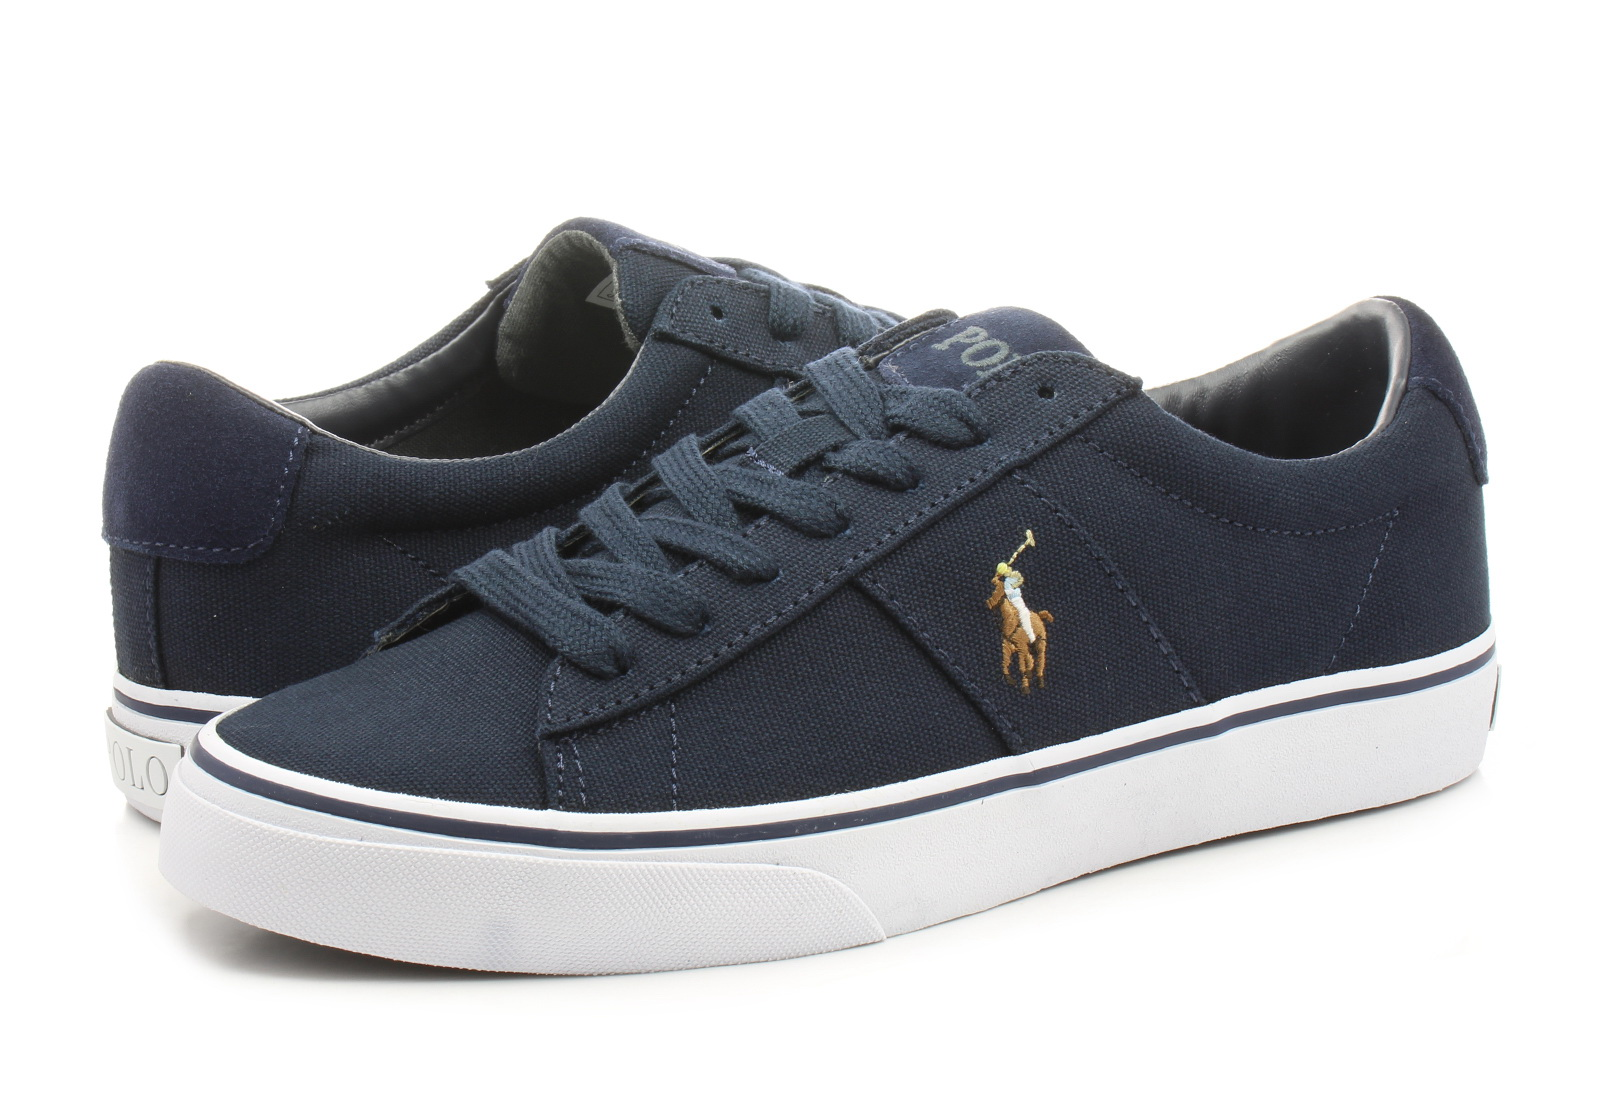 Polo Ralph Lauren Cipő - Sayer - Ne - 816749369002 - Office Shoes ... 2a1390db9b